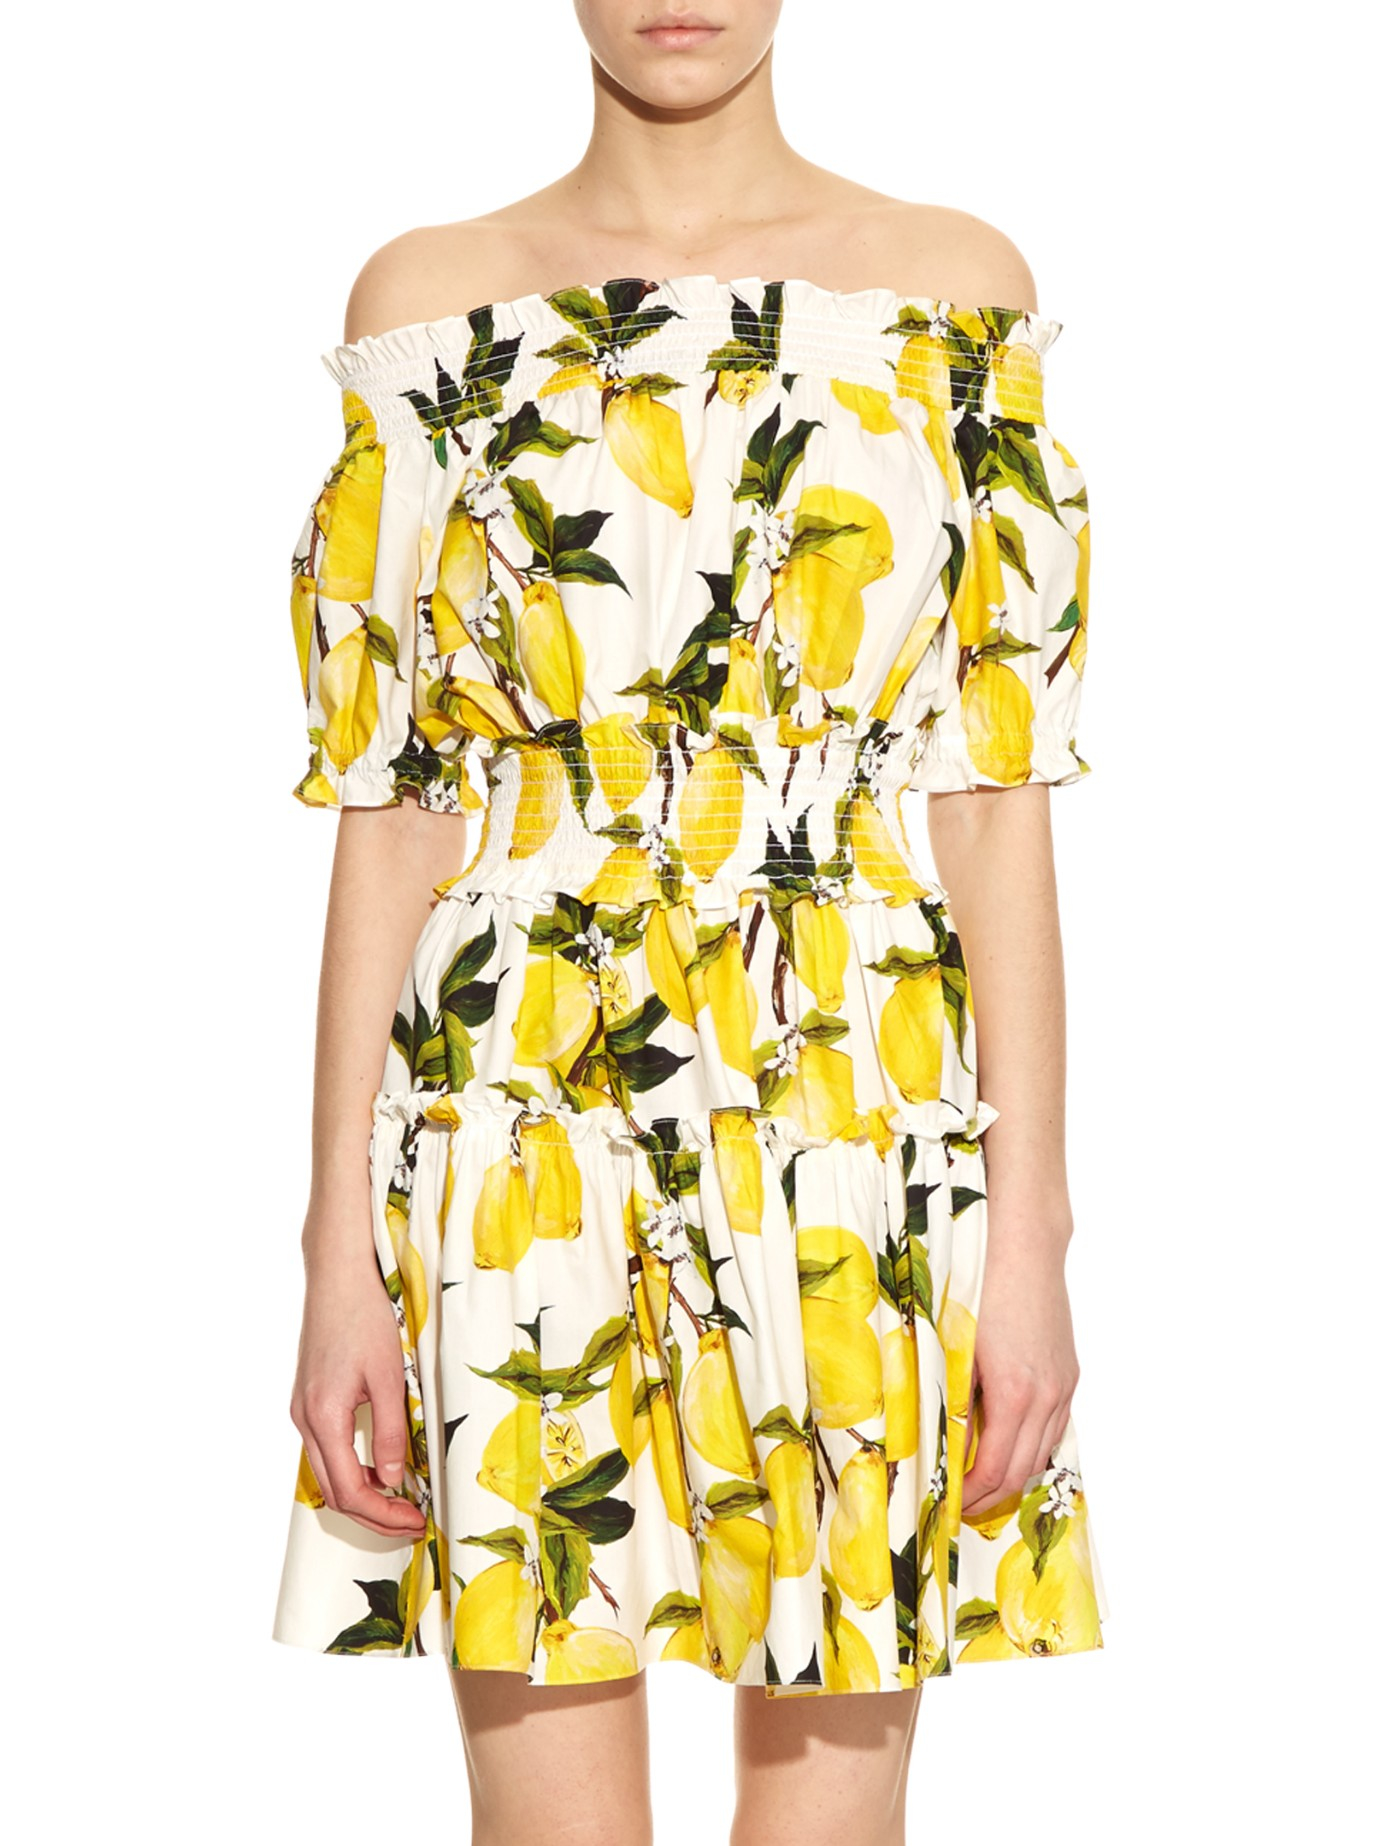 5a84e869 Dolce & Gabbana Printed Off-the-Shoulder Dress in Yellow - Lyst